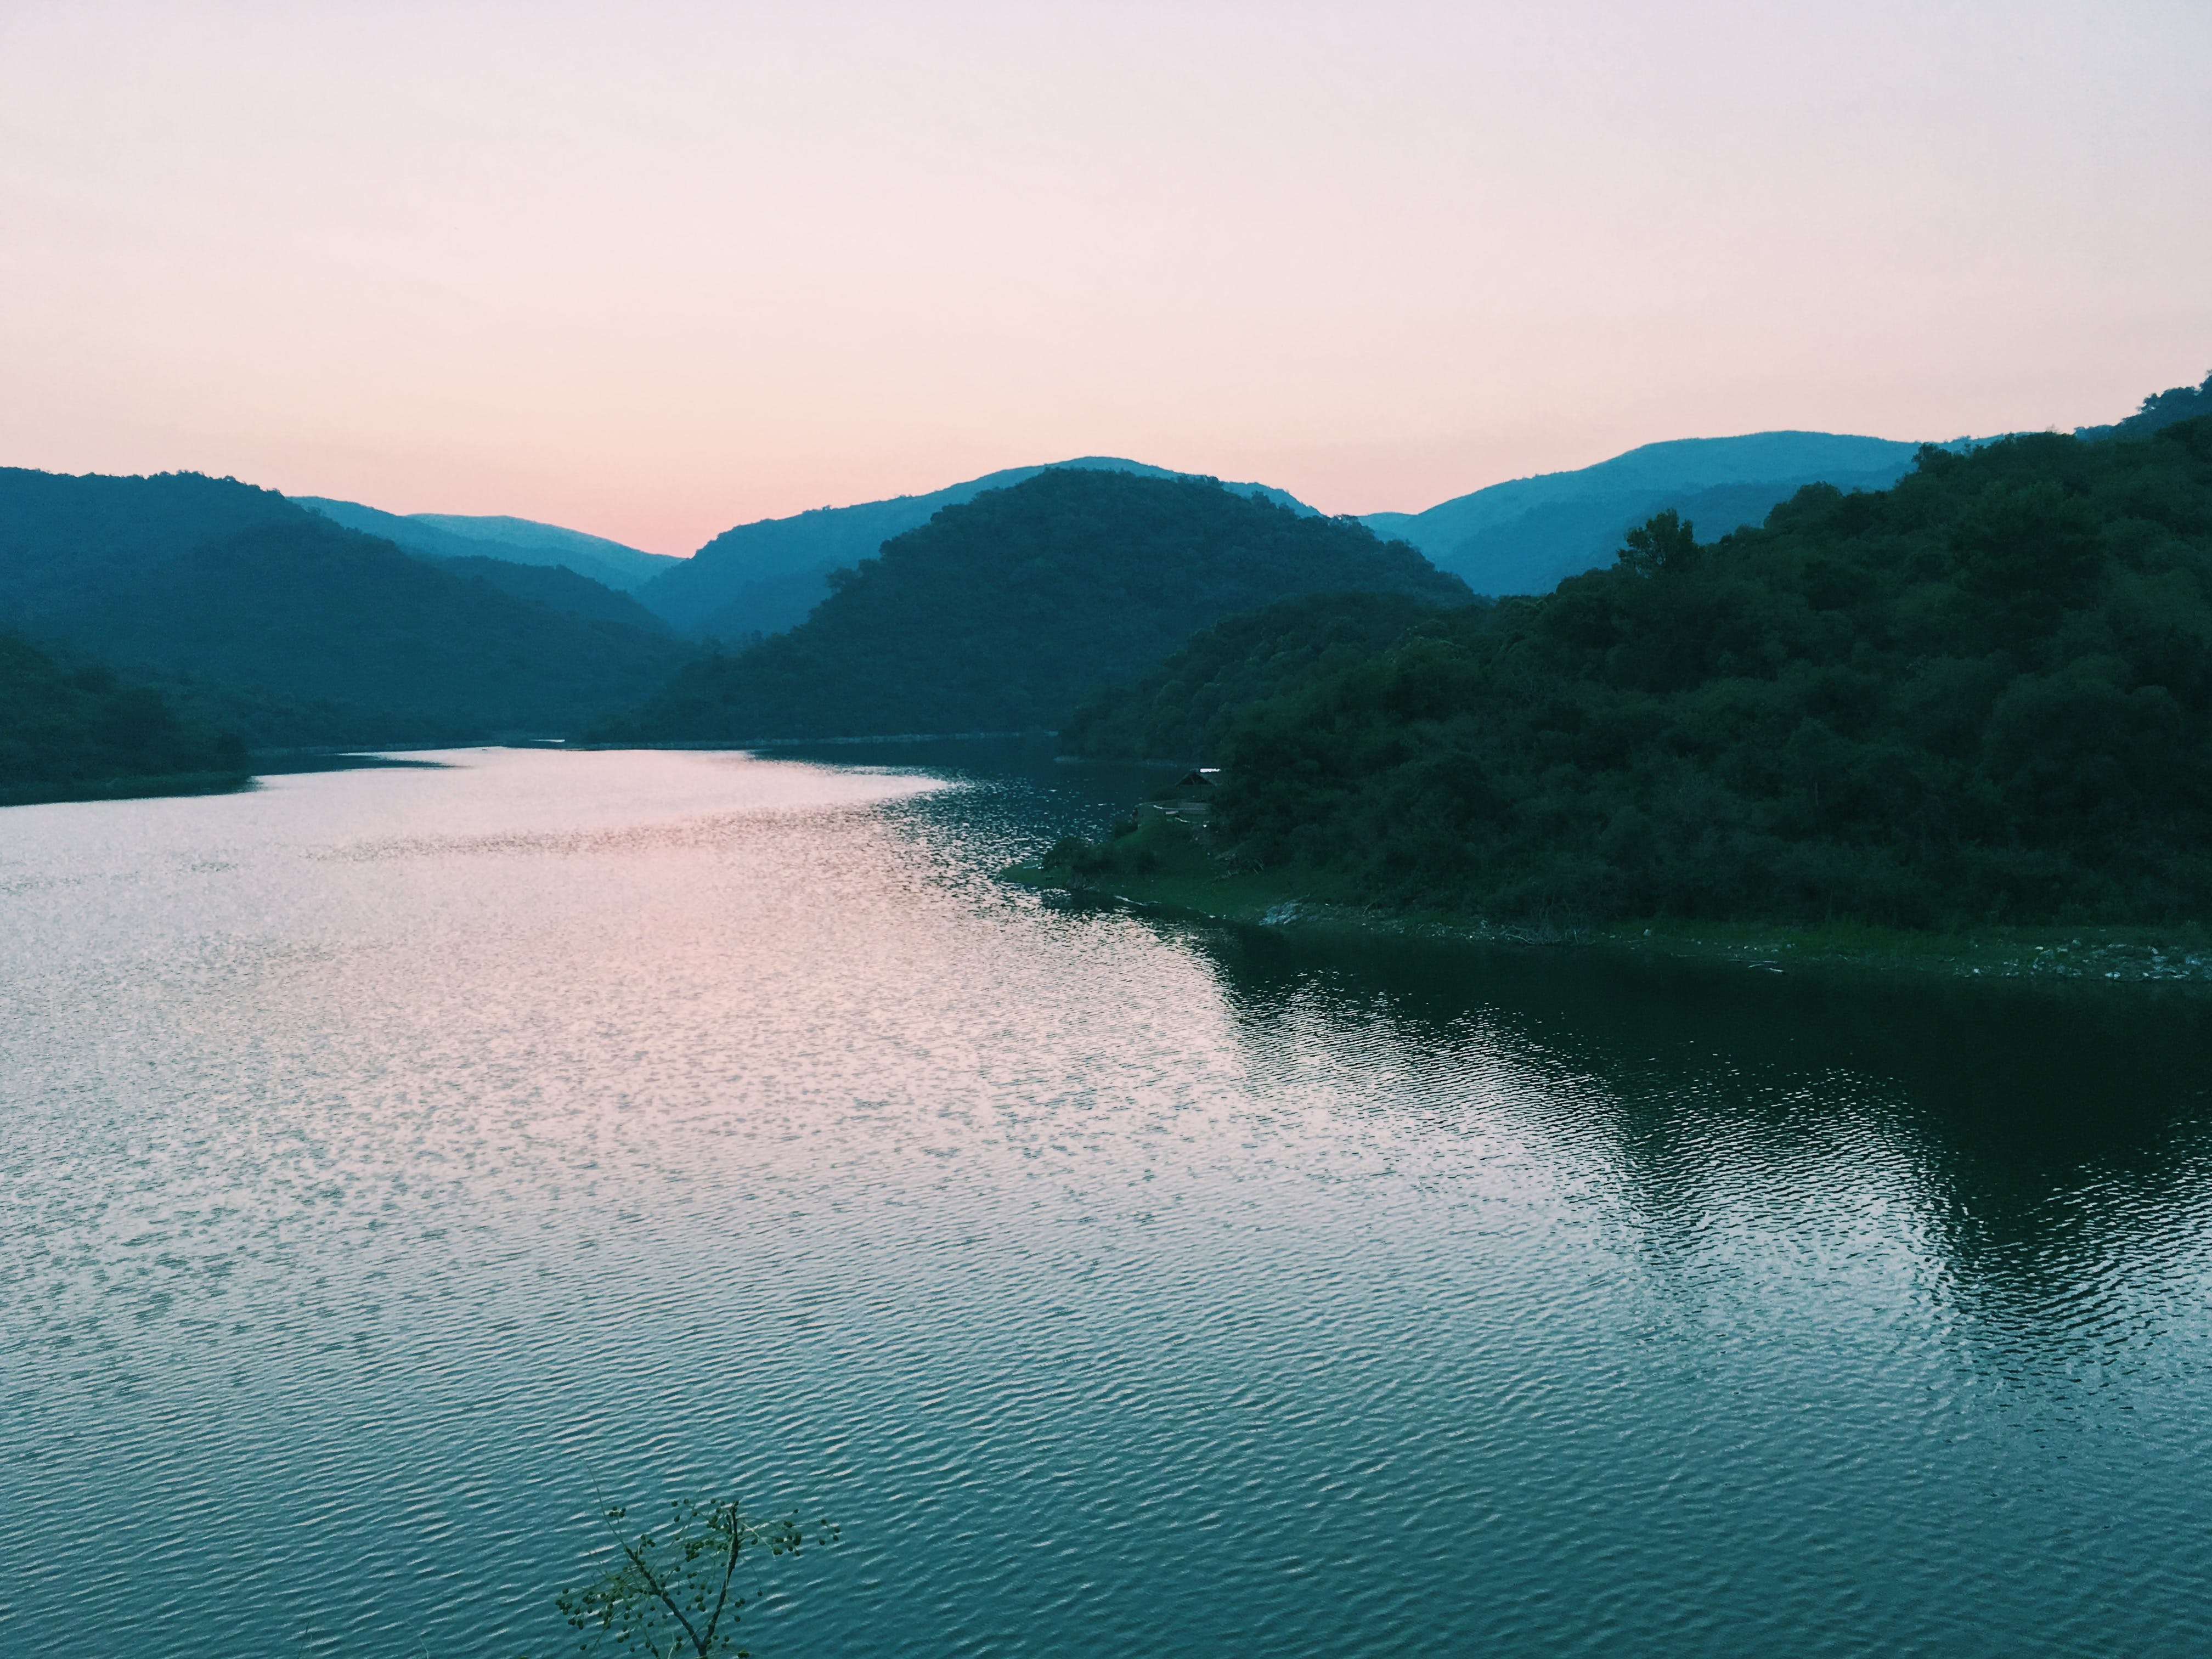 Free stock photo of lake, landscape, landscaping, mobilechallenge